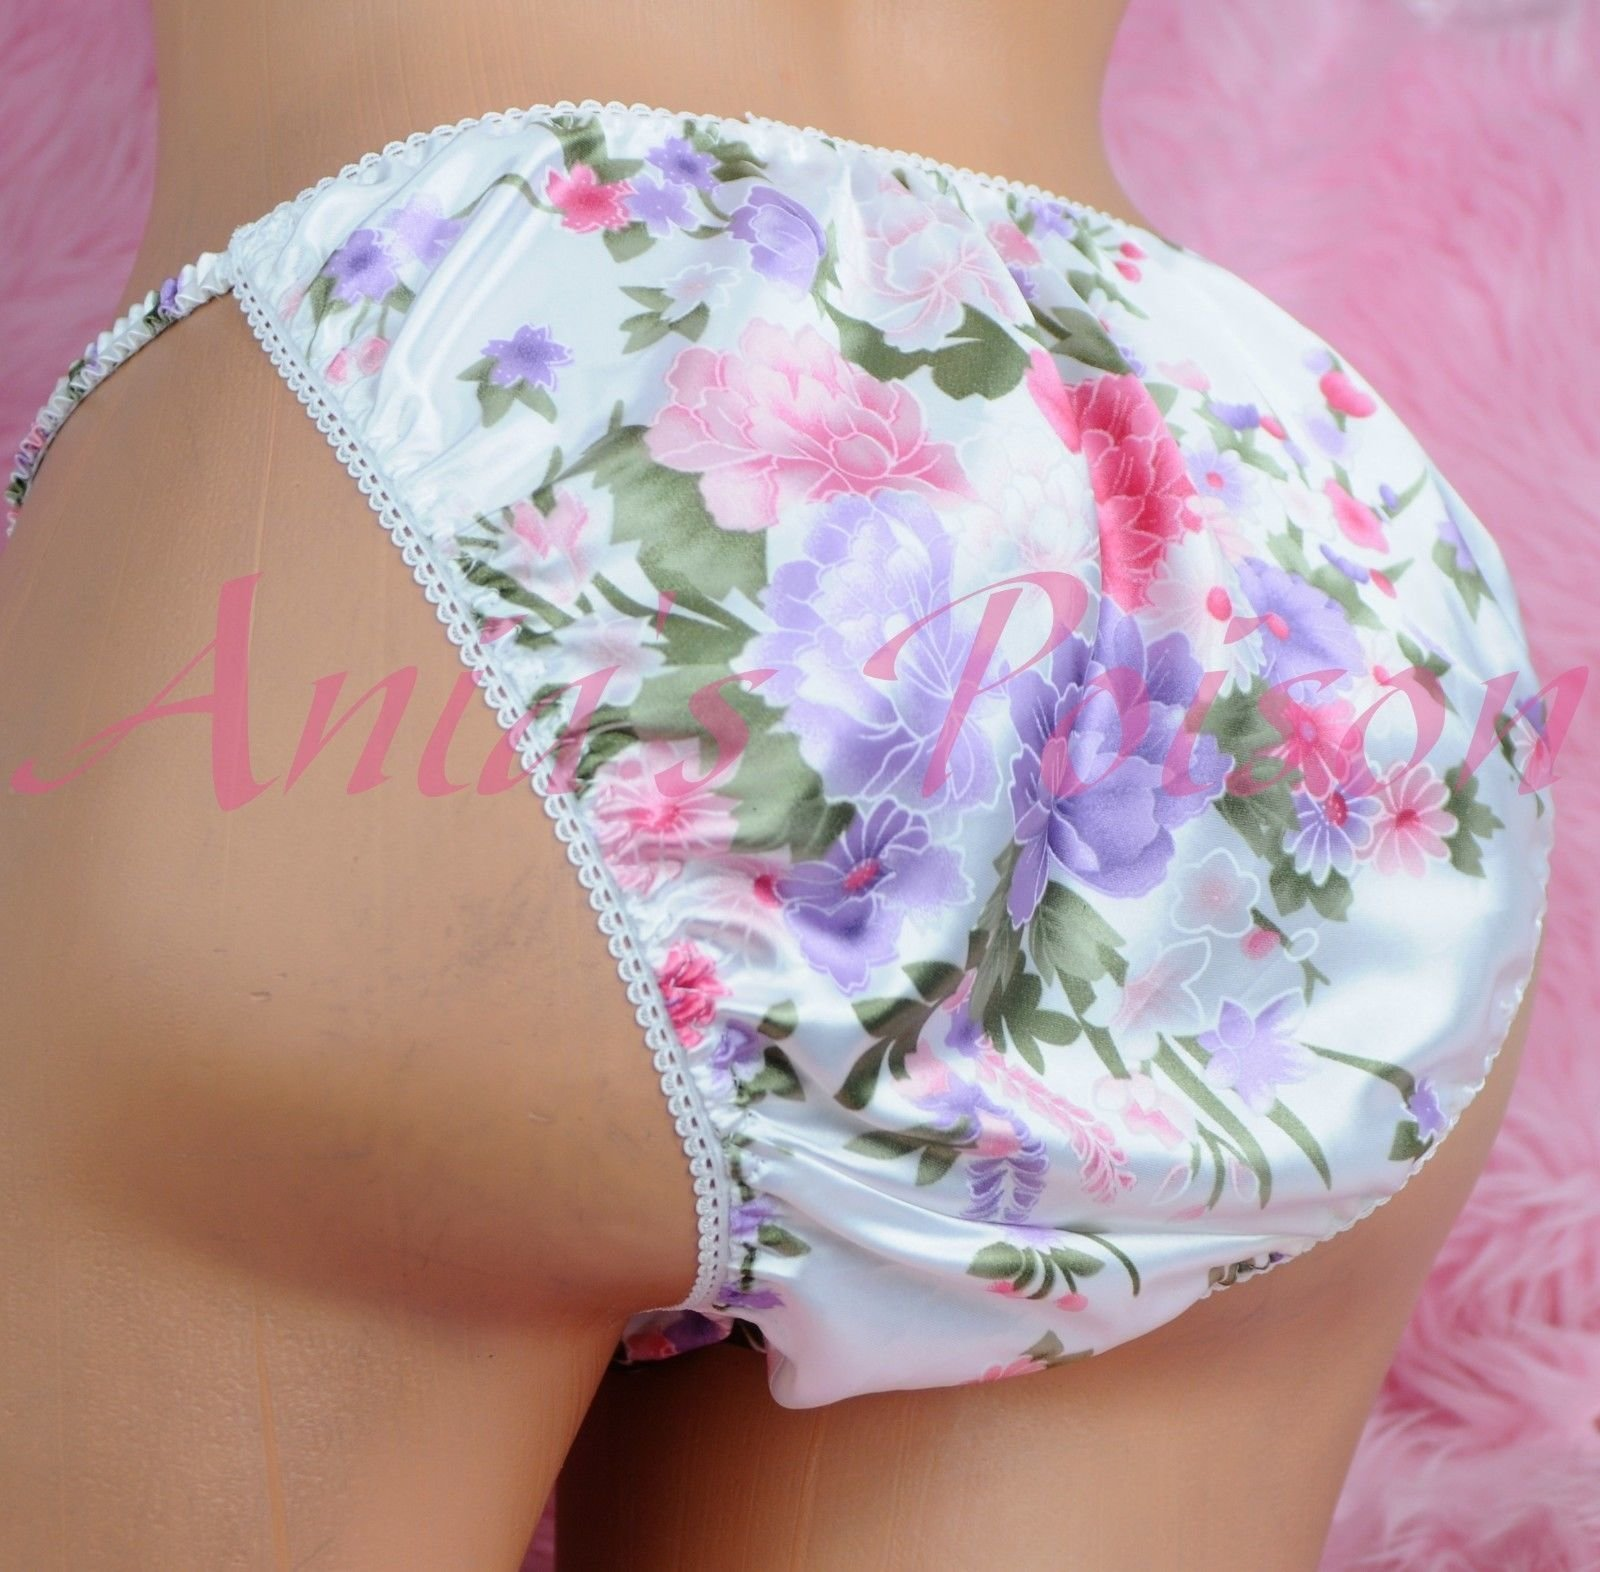 Ania's Poison MANties S - XXL Floral Asian Prints Super Rare 100% polyester string bikini sissy mens underwear panties